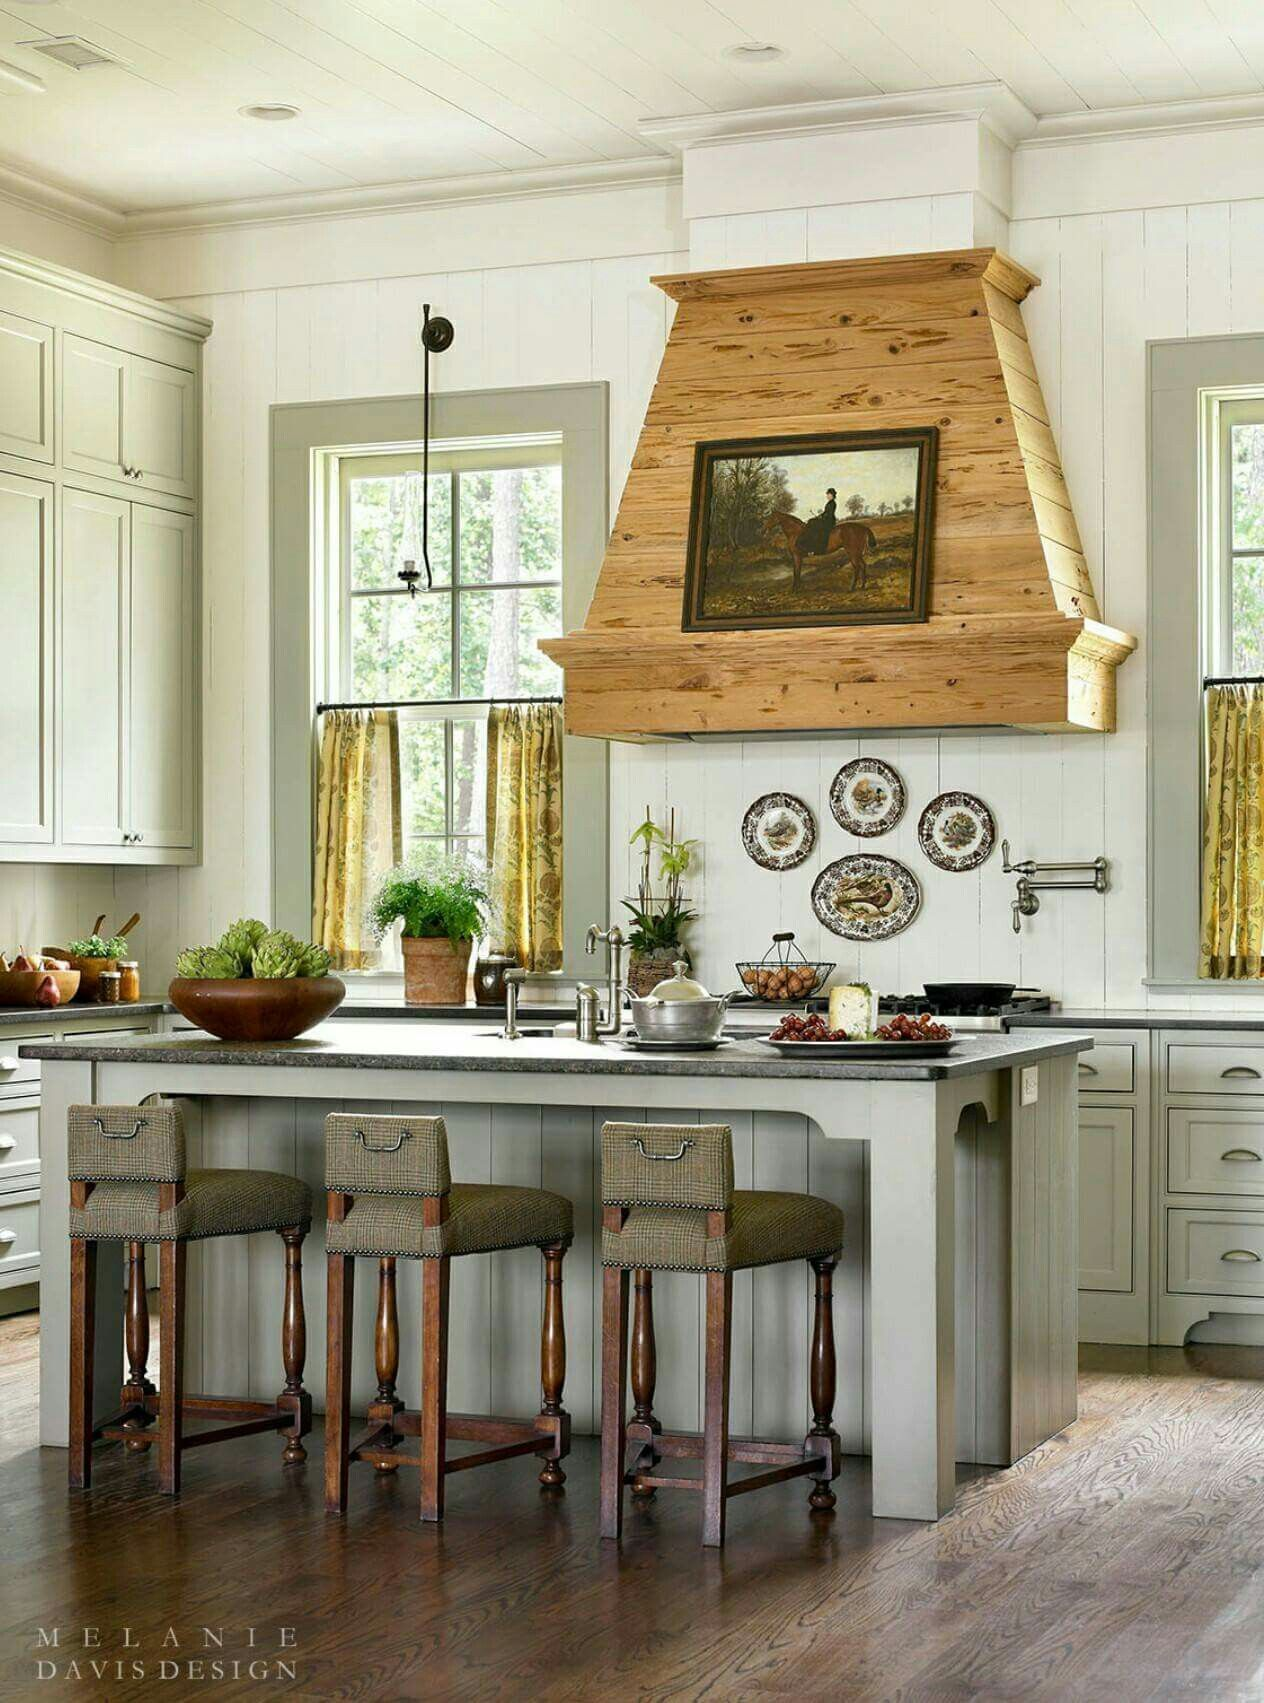 Pin by Holly Dearmon on Kitchens Pinterest